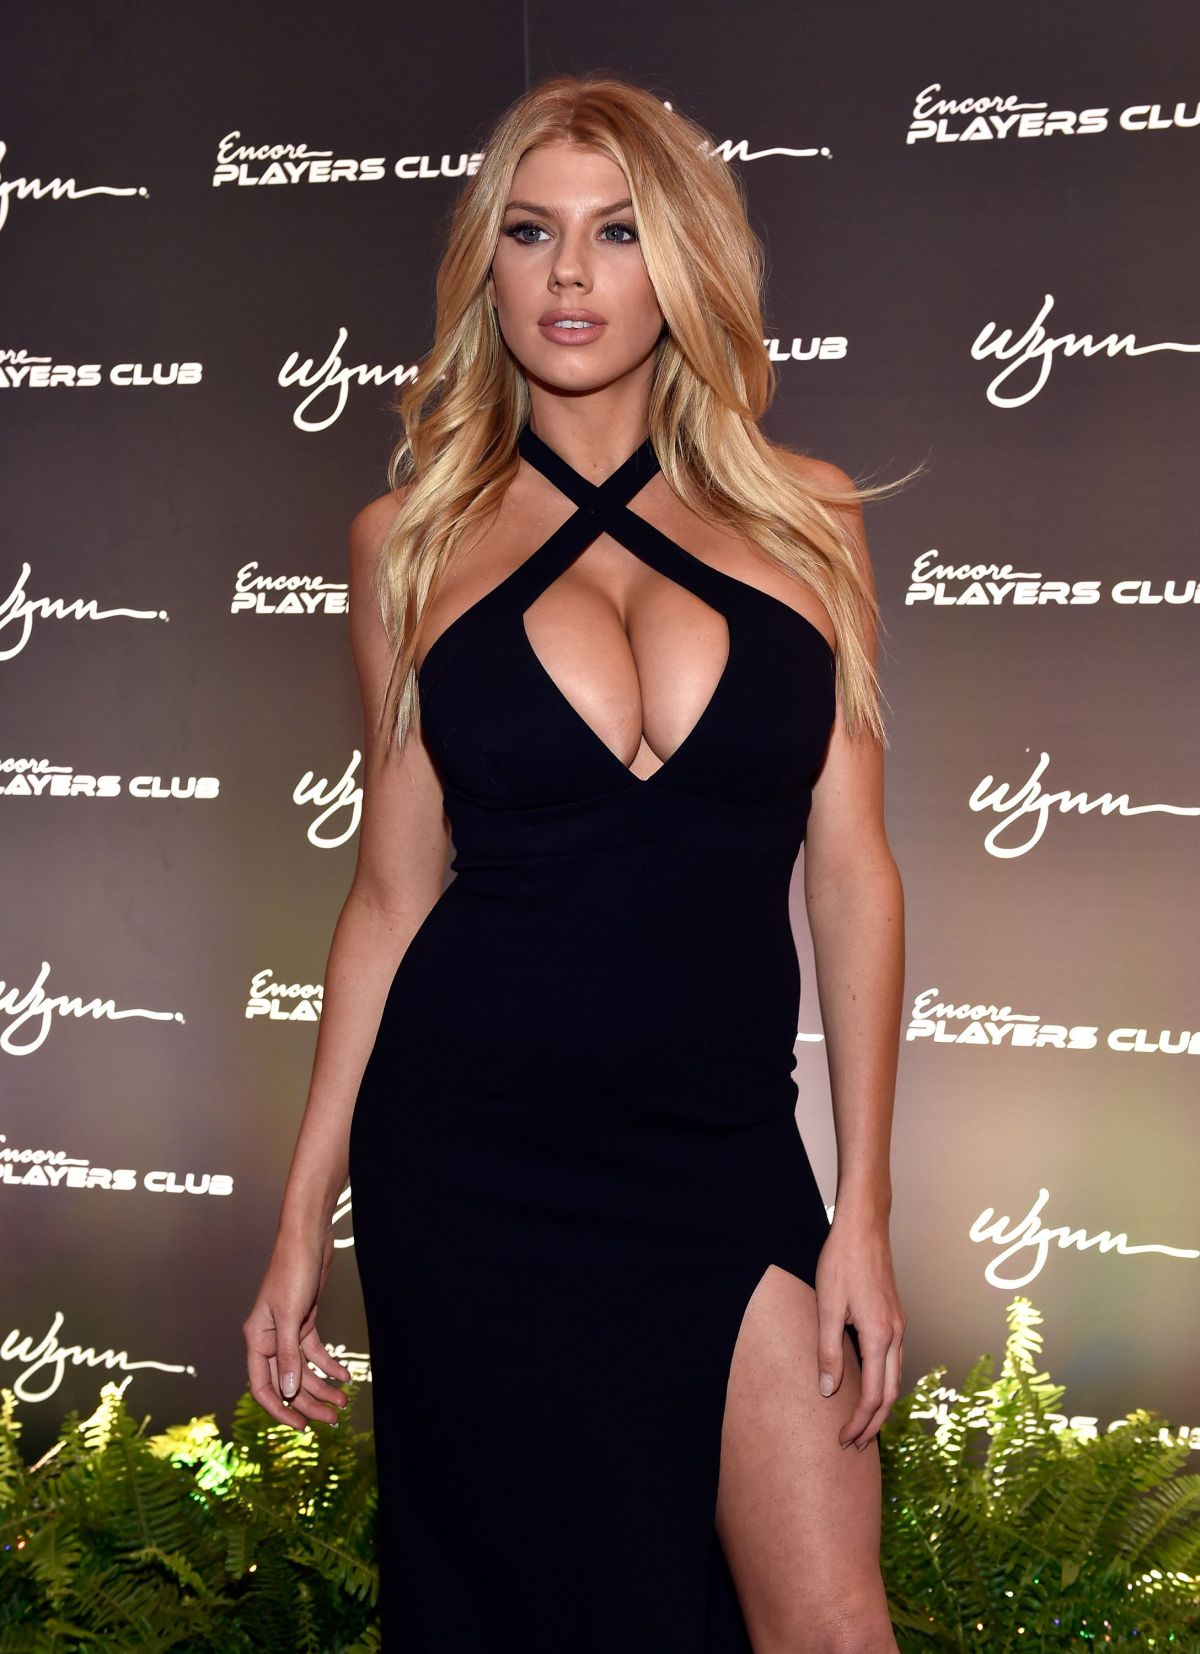 charlotte-mckinney-at-encore-player-s-cl